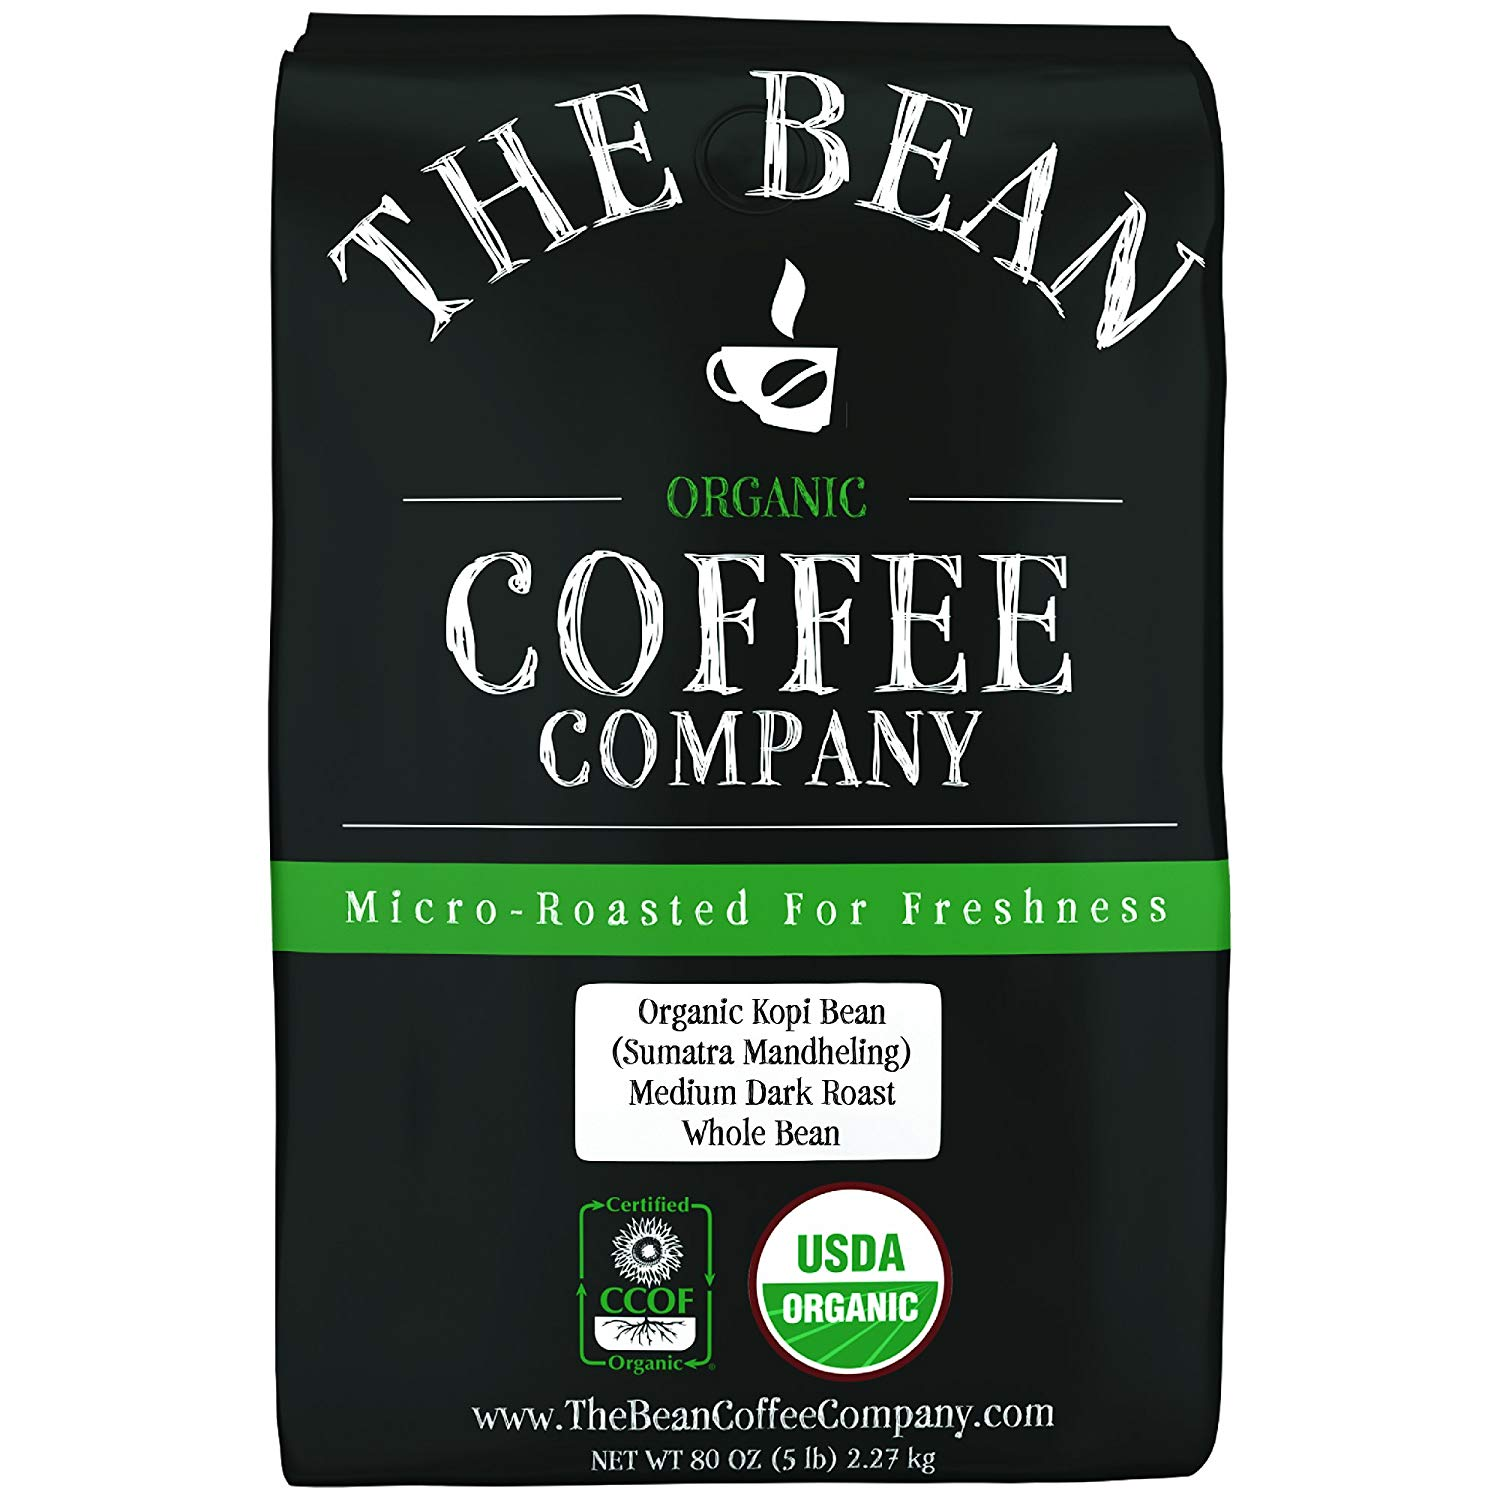 The Bean Coffee Company Organic Kopi Bean (Sumatra Mandheling), Medium Dark Roast, Whole Bean, 5-Pound Bag